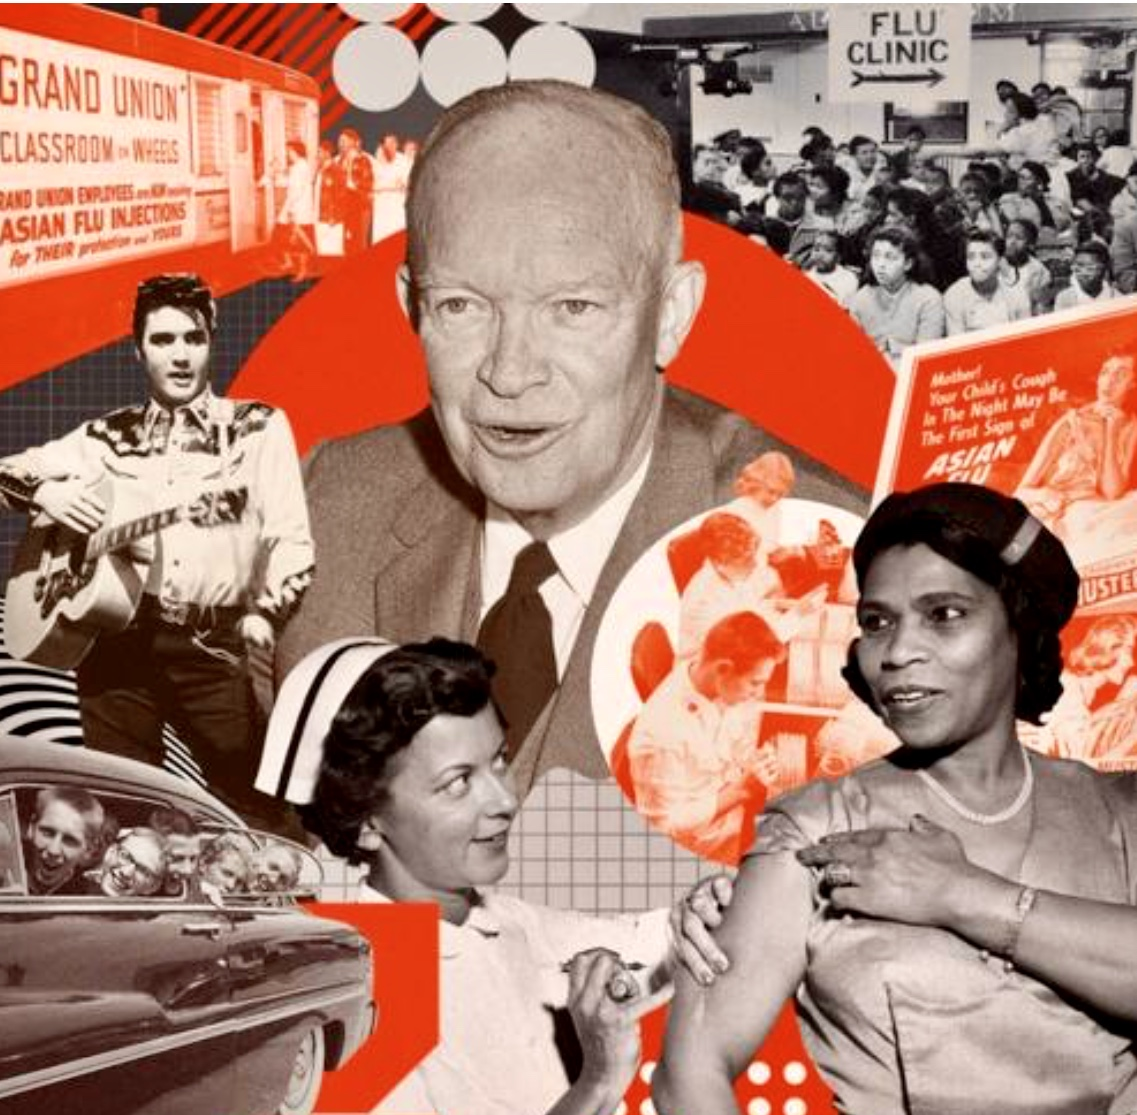 Niall Ferguson: How Ike's 1950s America Beat The 'Asian Flu' With Science & Common Sense